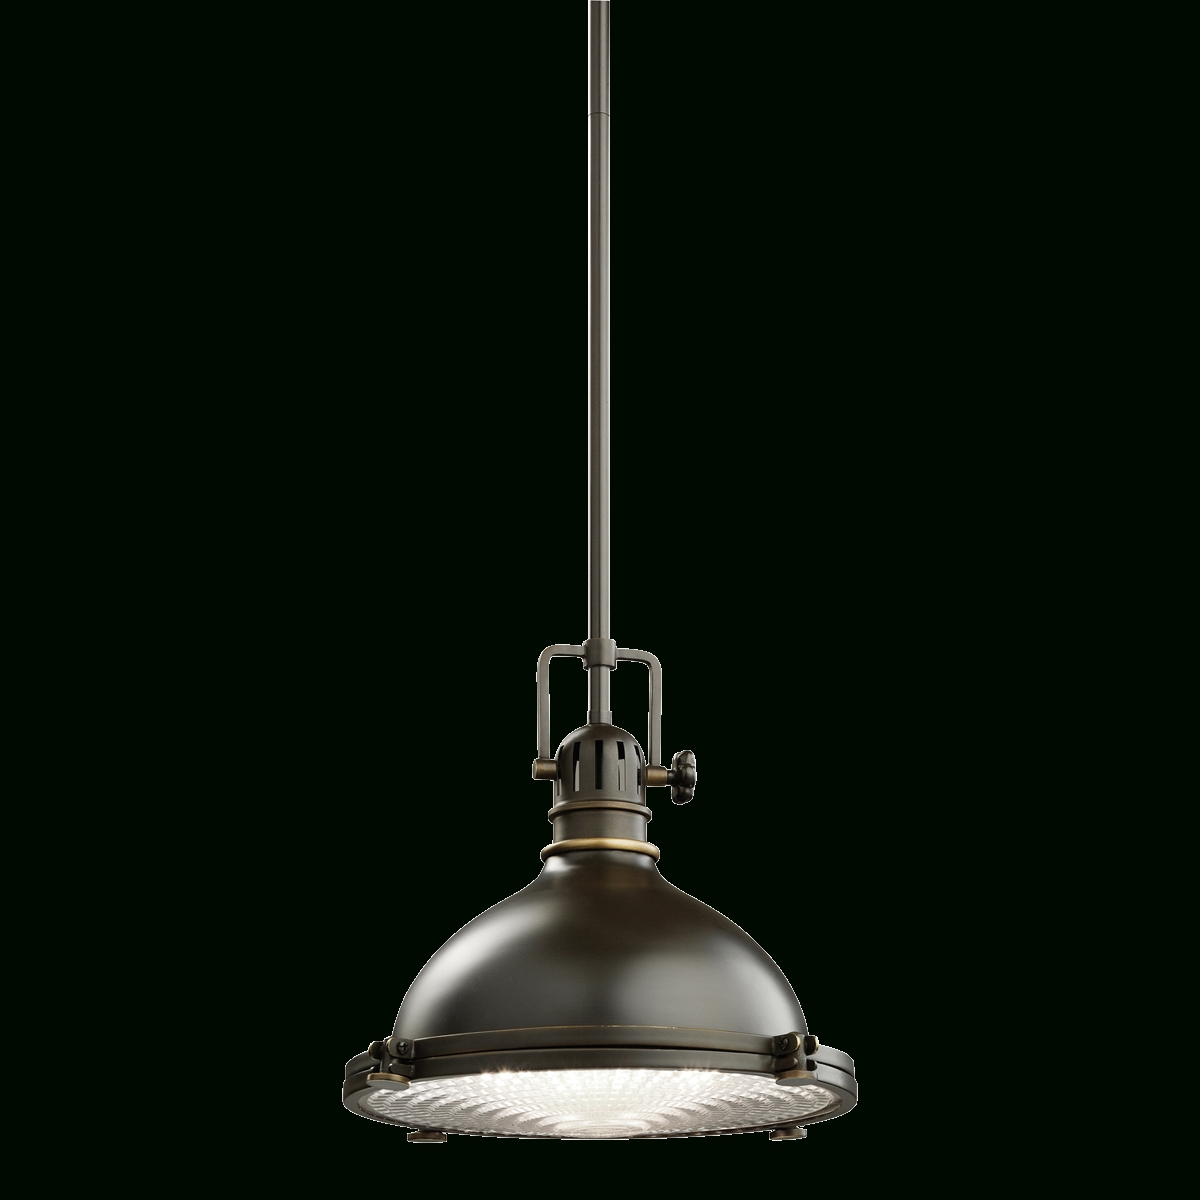 Kichler 1 Light Industrial Pendant (2665Pn)| Polished Nickel Lighting with regard to Industrial Looking Pendant Light Fixtures (Image 9 of 15)